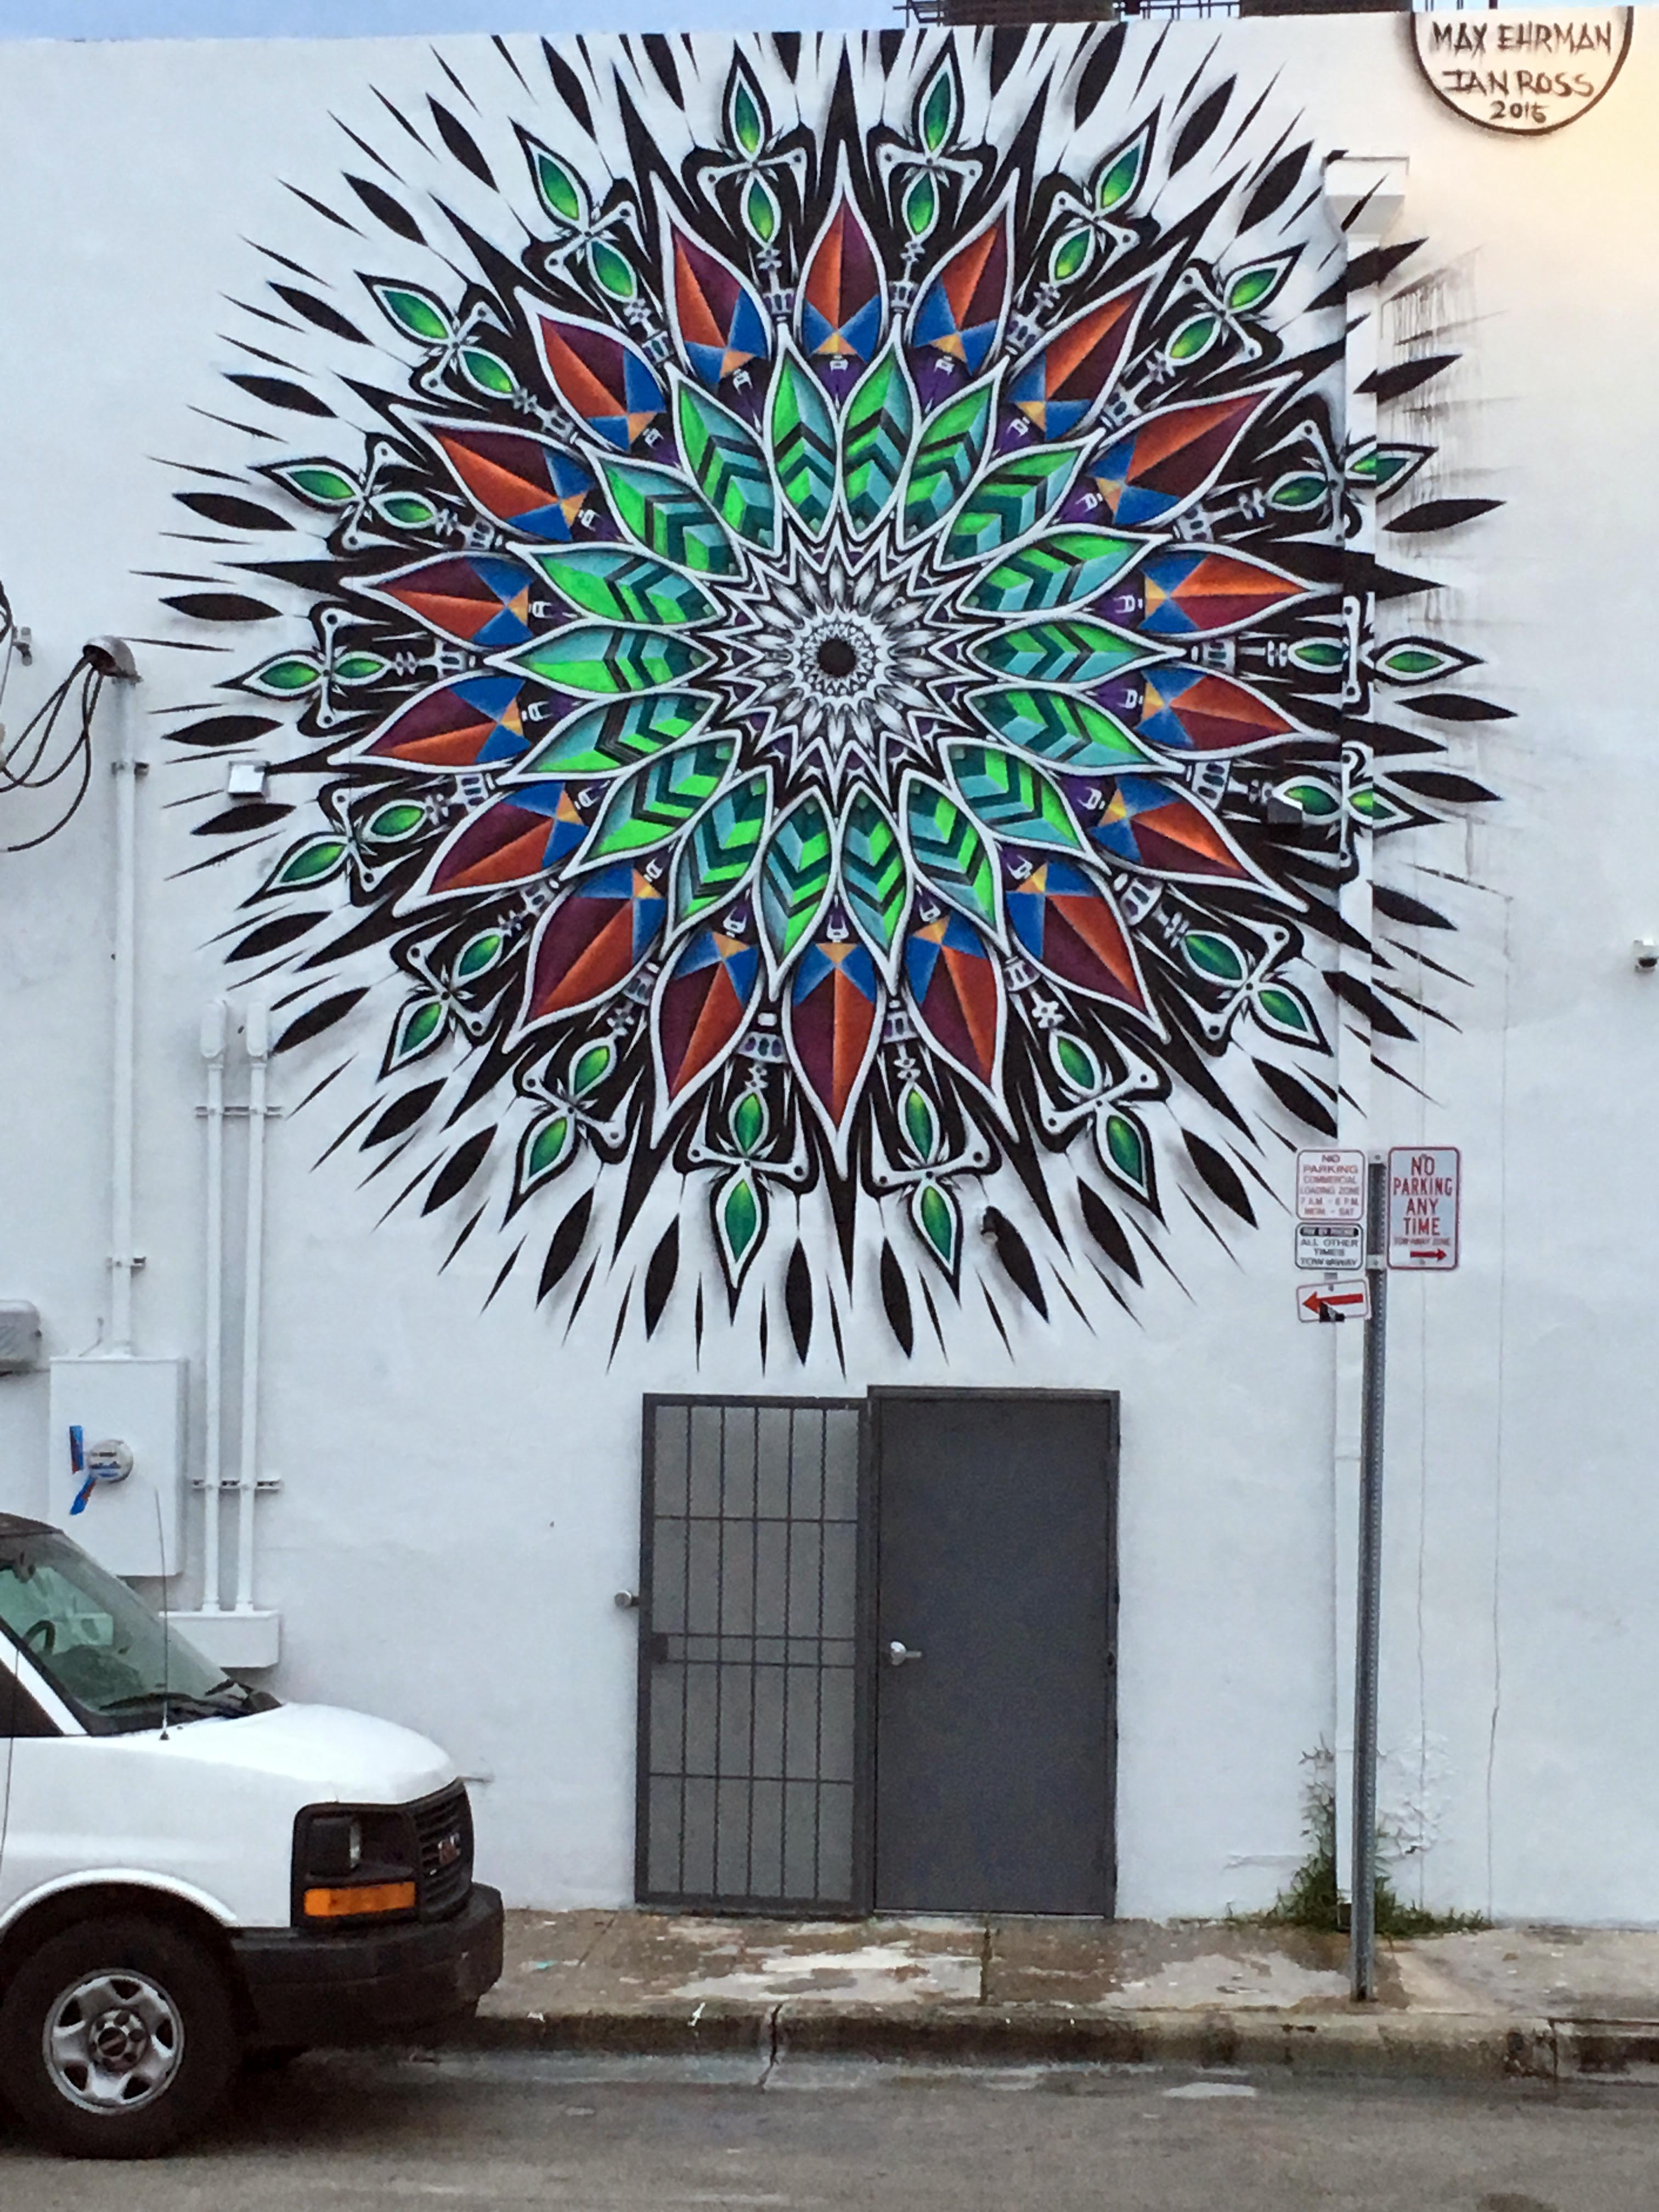 Mandala by Ian Ross and Eon75